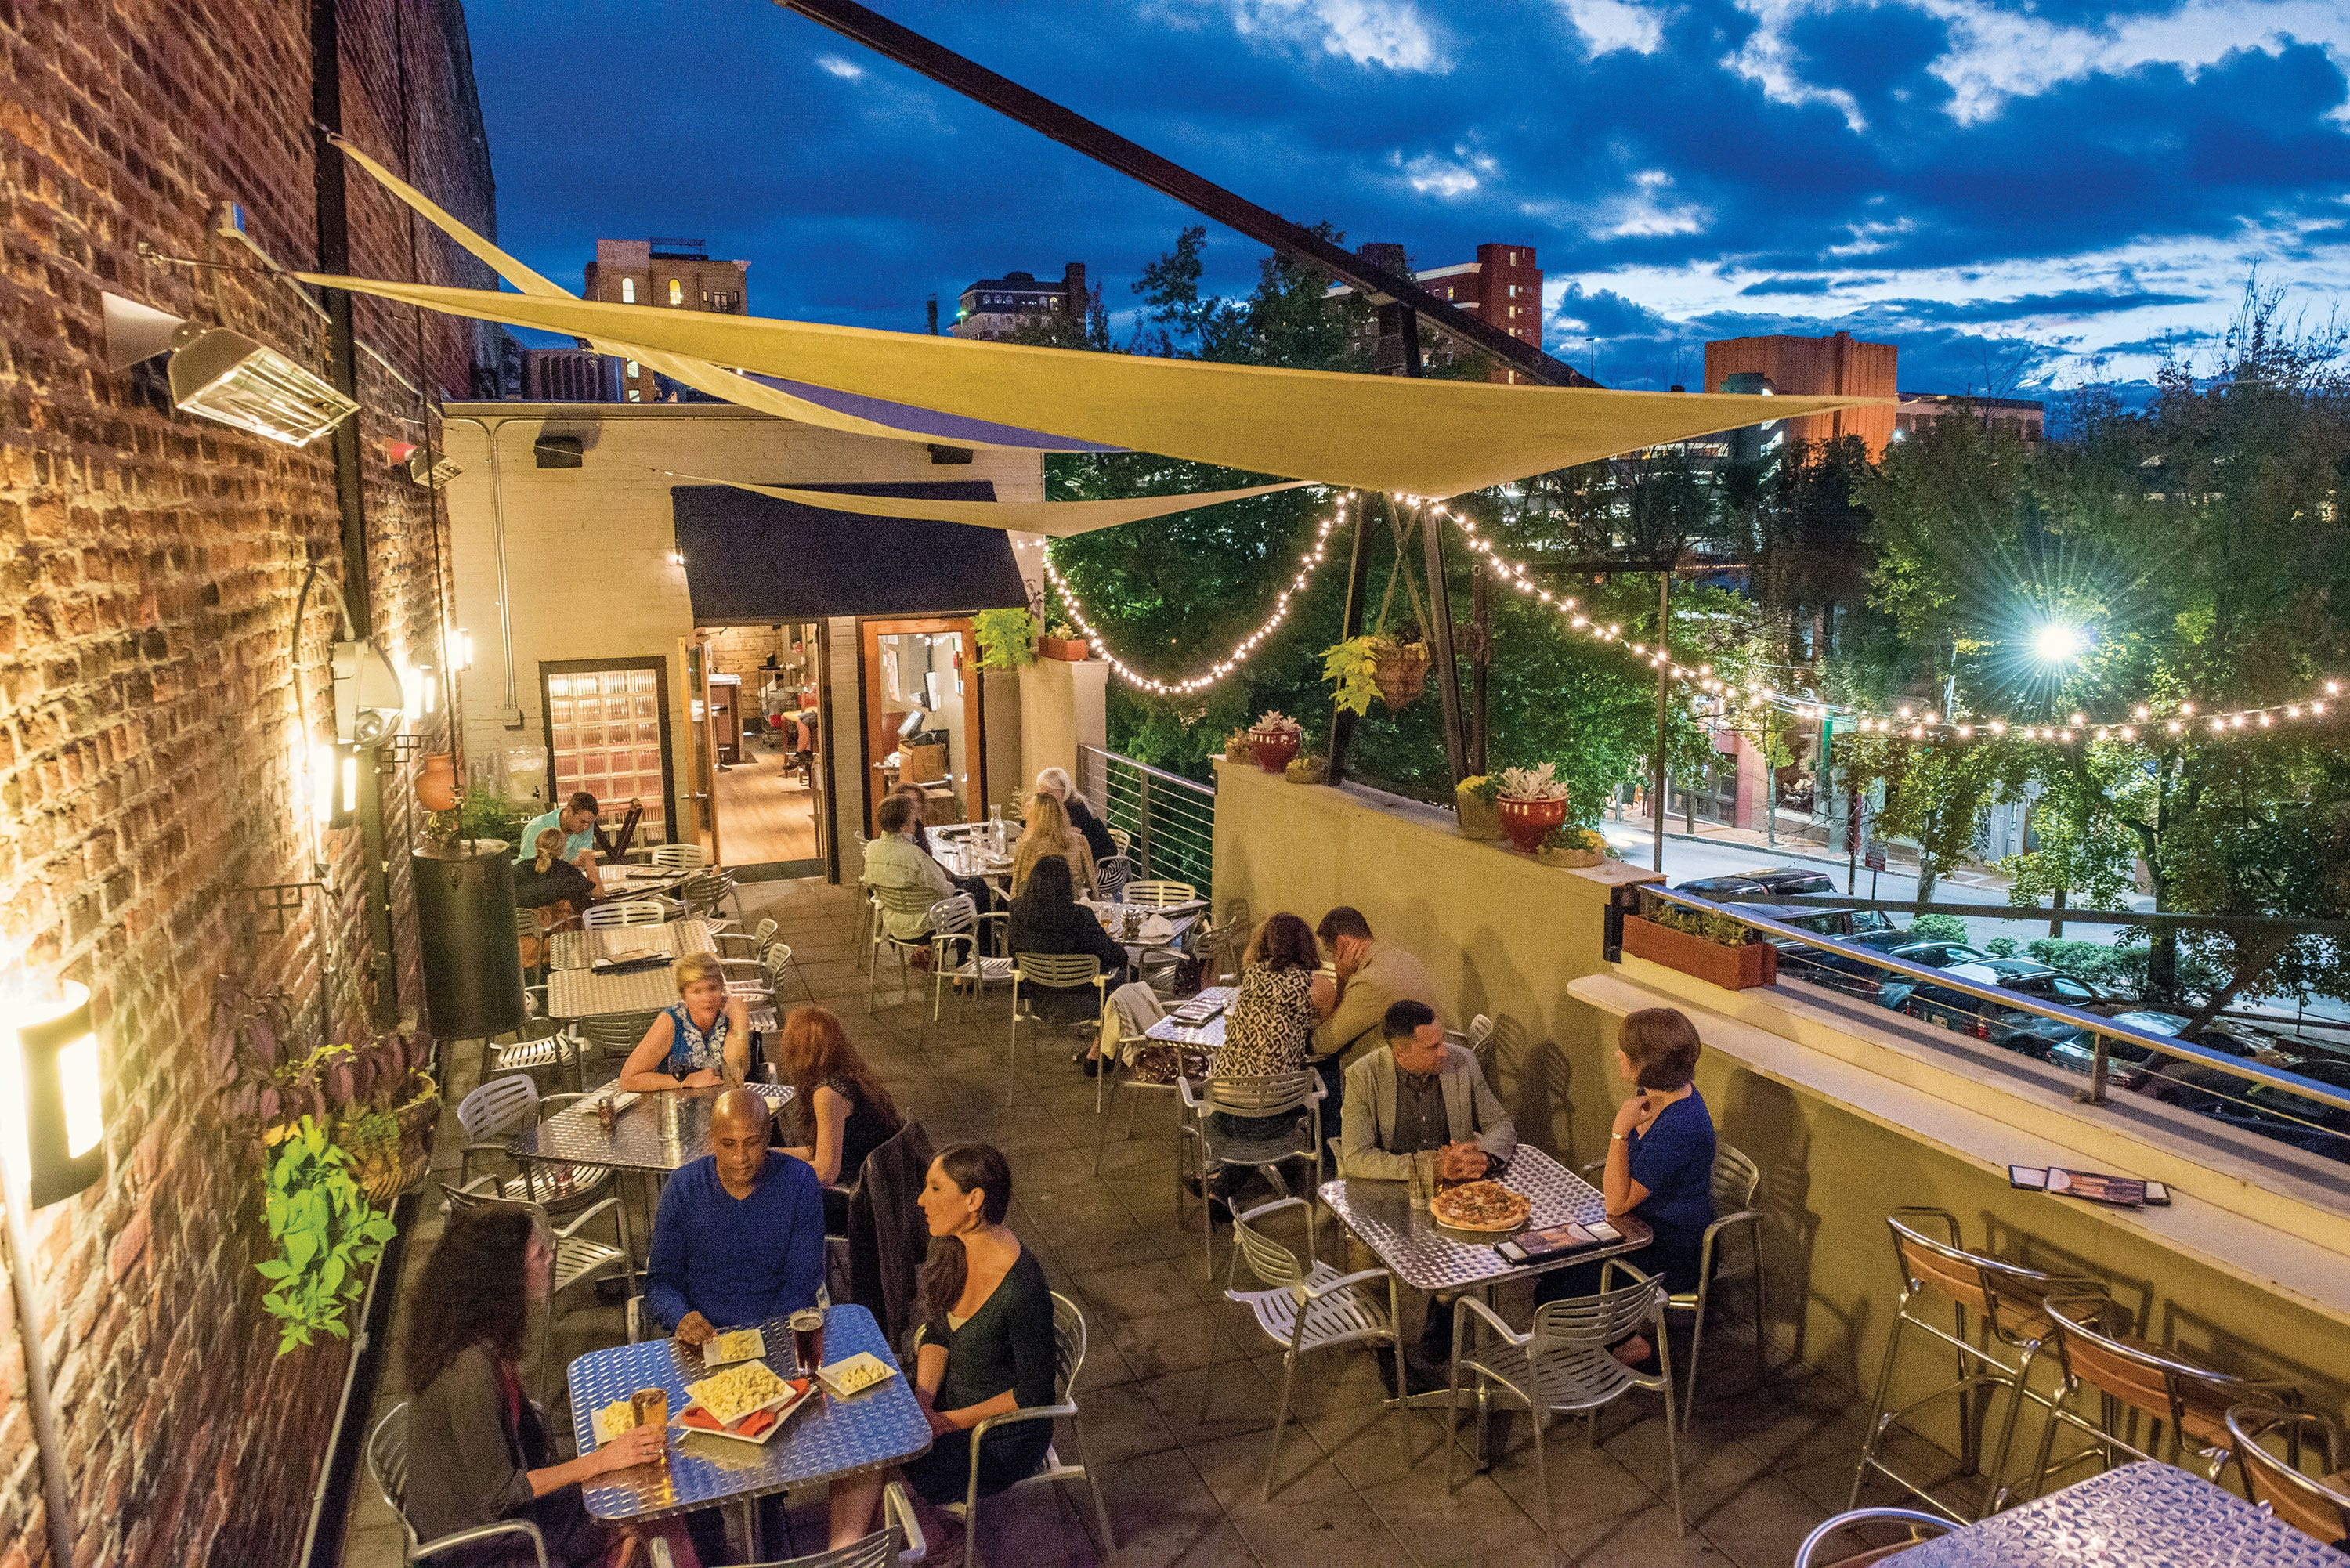 king5.com | The USAs best small cities for travelers